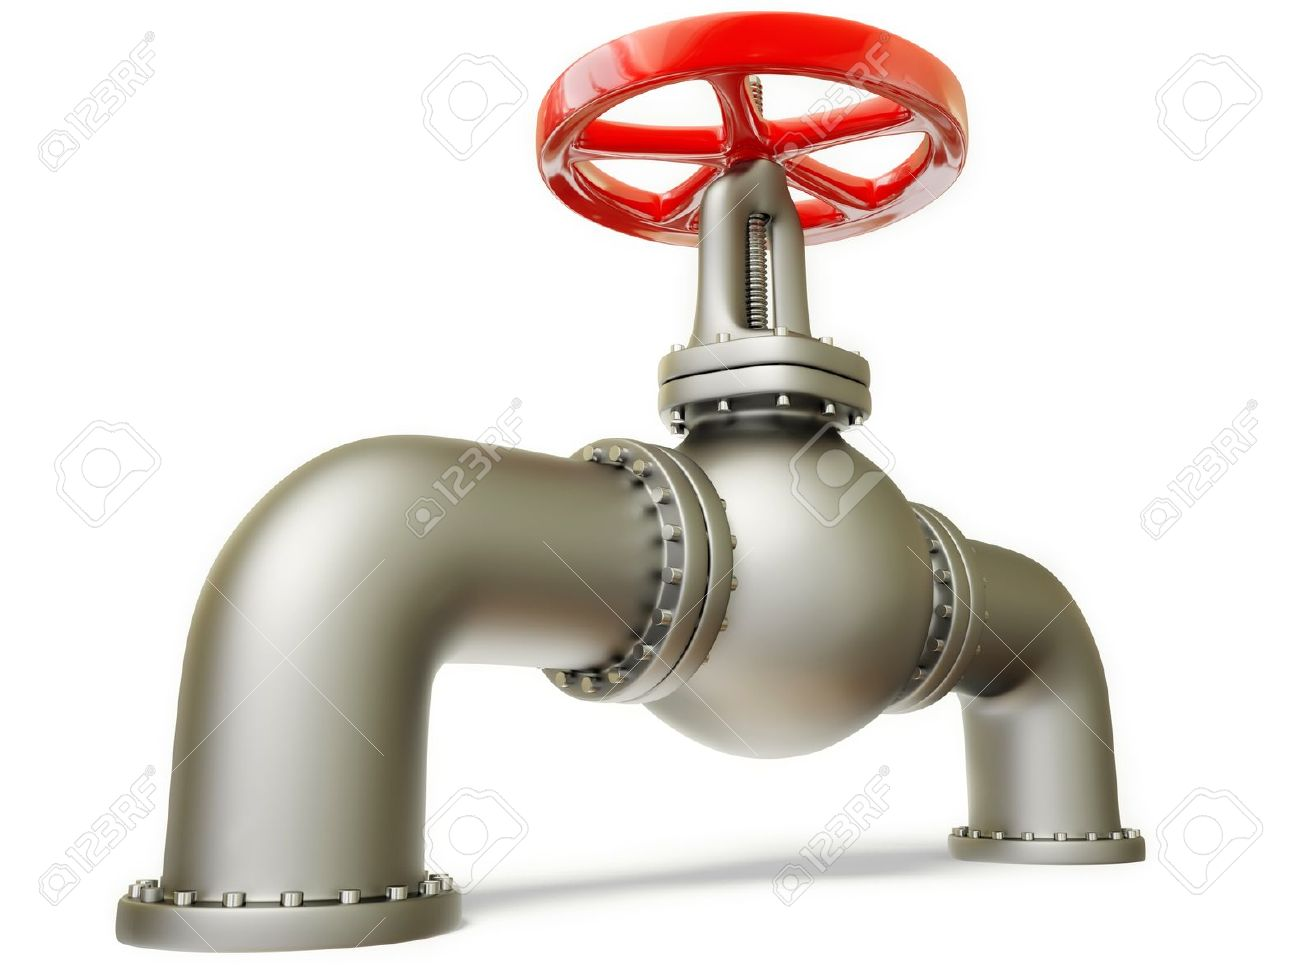 Gas Pipe With A Red Valve On White Stock Photo, Picture And.